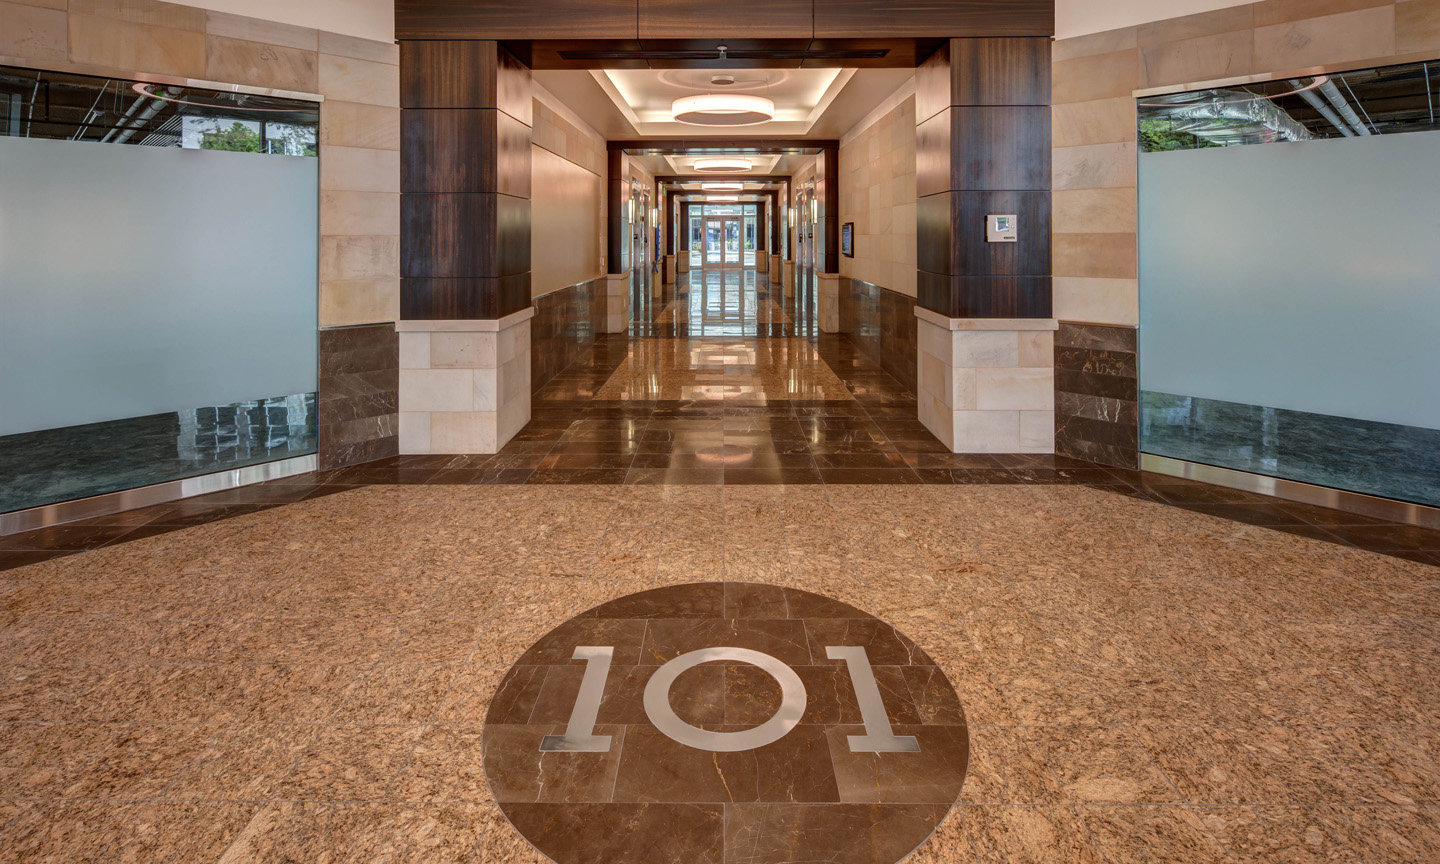 Tower 101 developments real estate